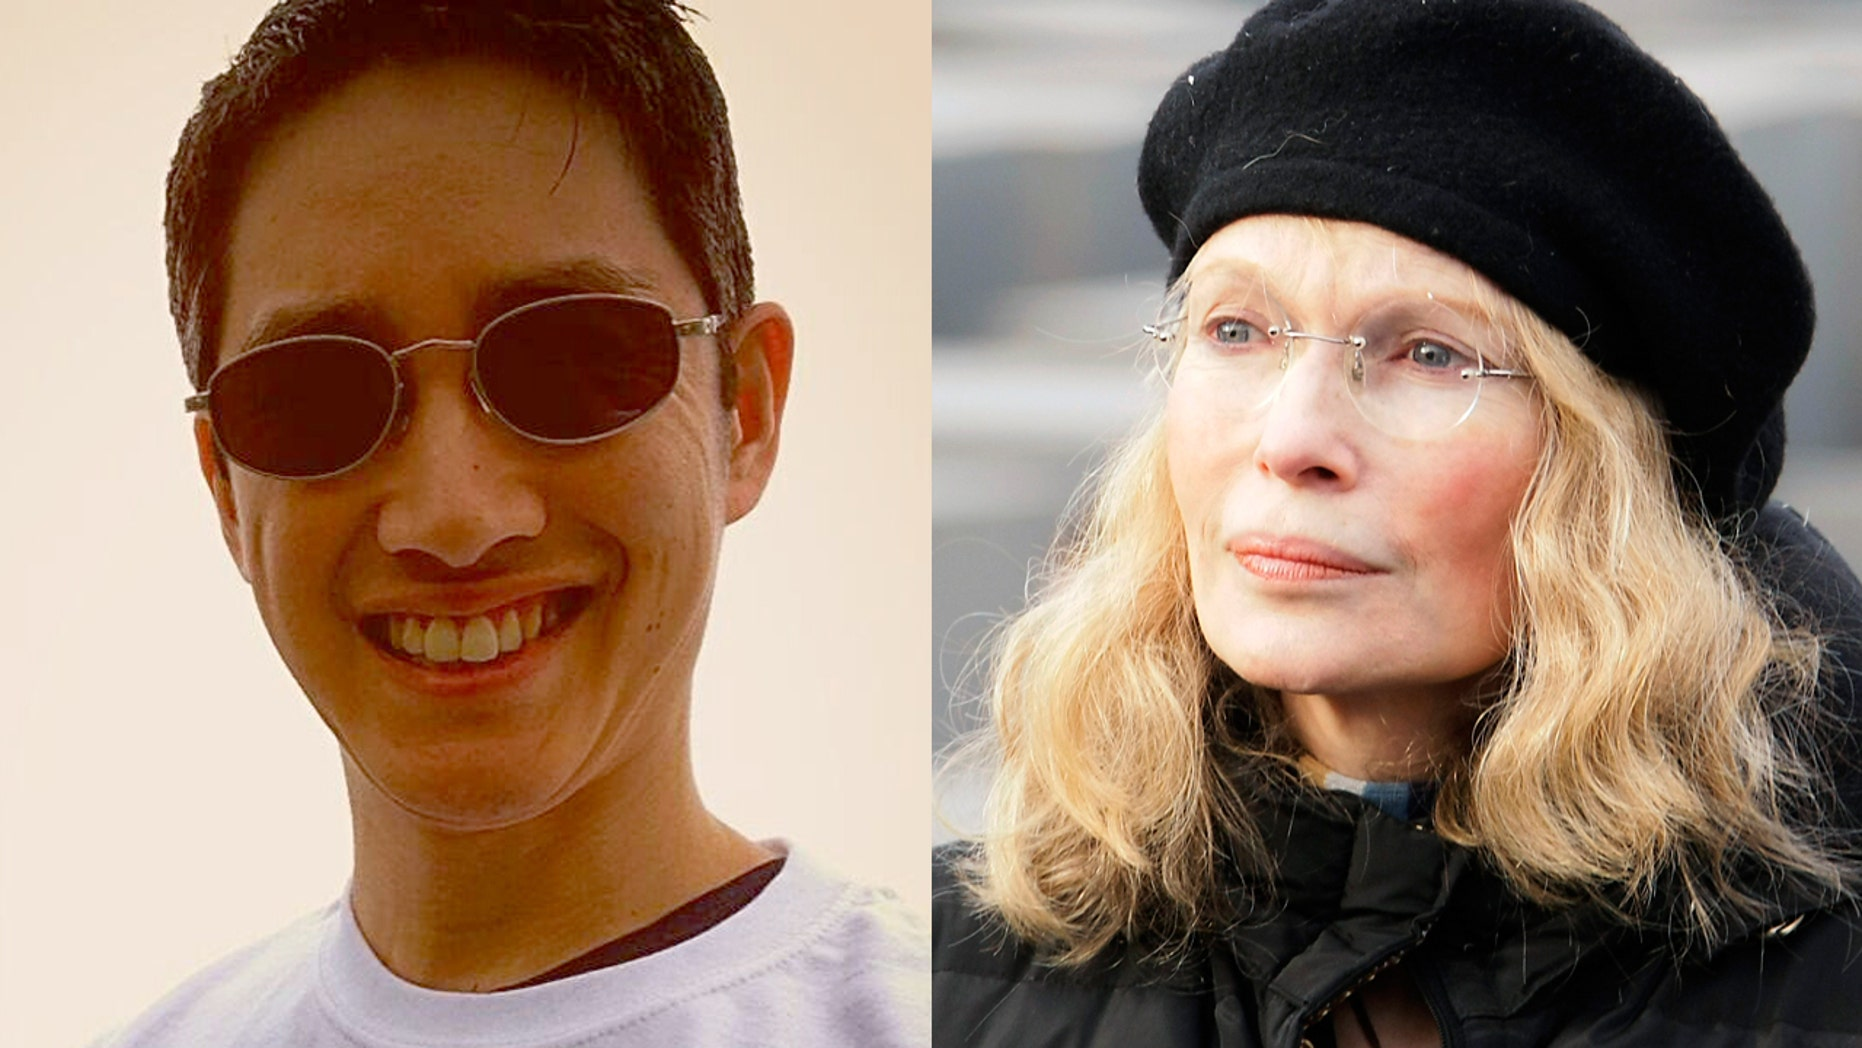 Mia Farrow's adopted son Moses defends his father Woody Allen and accuses Farrow of abuse.